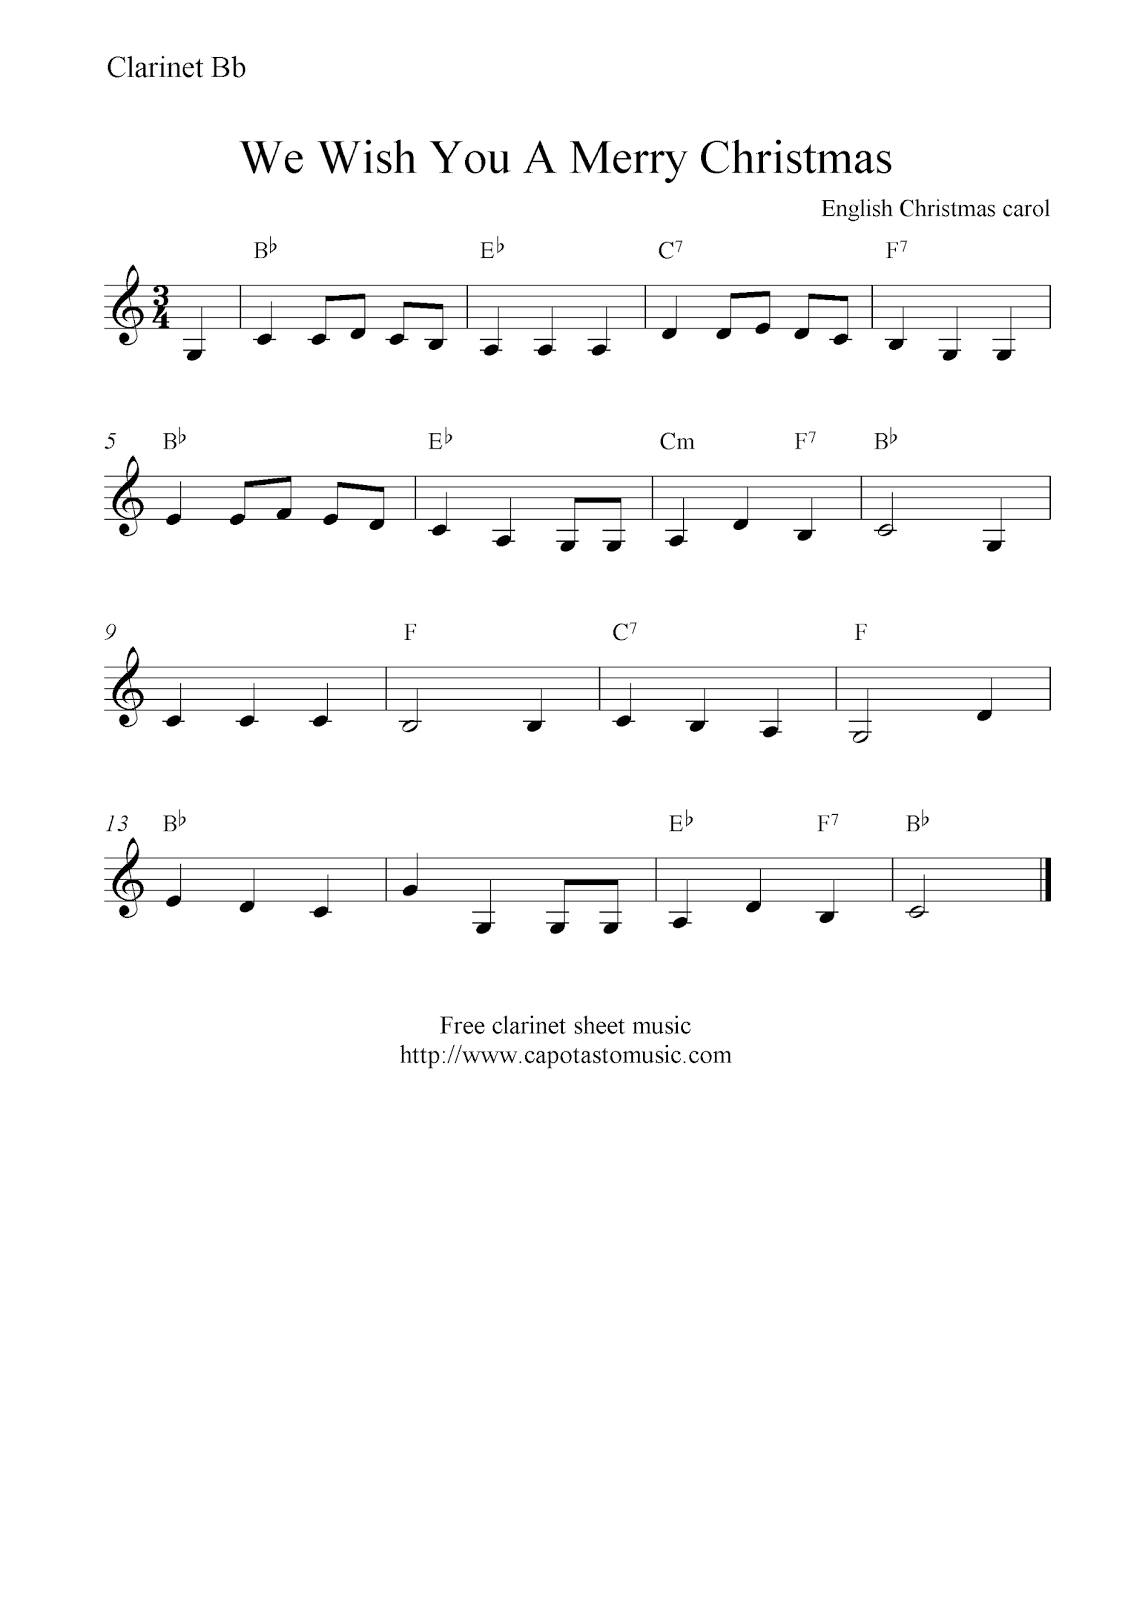 We Wish You A Merry Christmas, Free Christmas Clarinet Sheet Music Notes - Free Printable Christmas Sheet Music For Clarinet